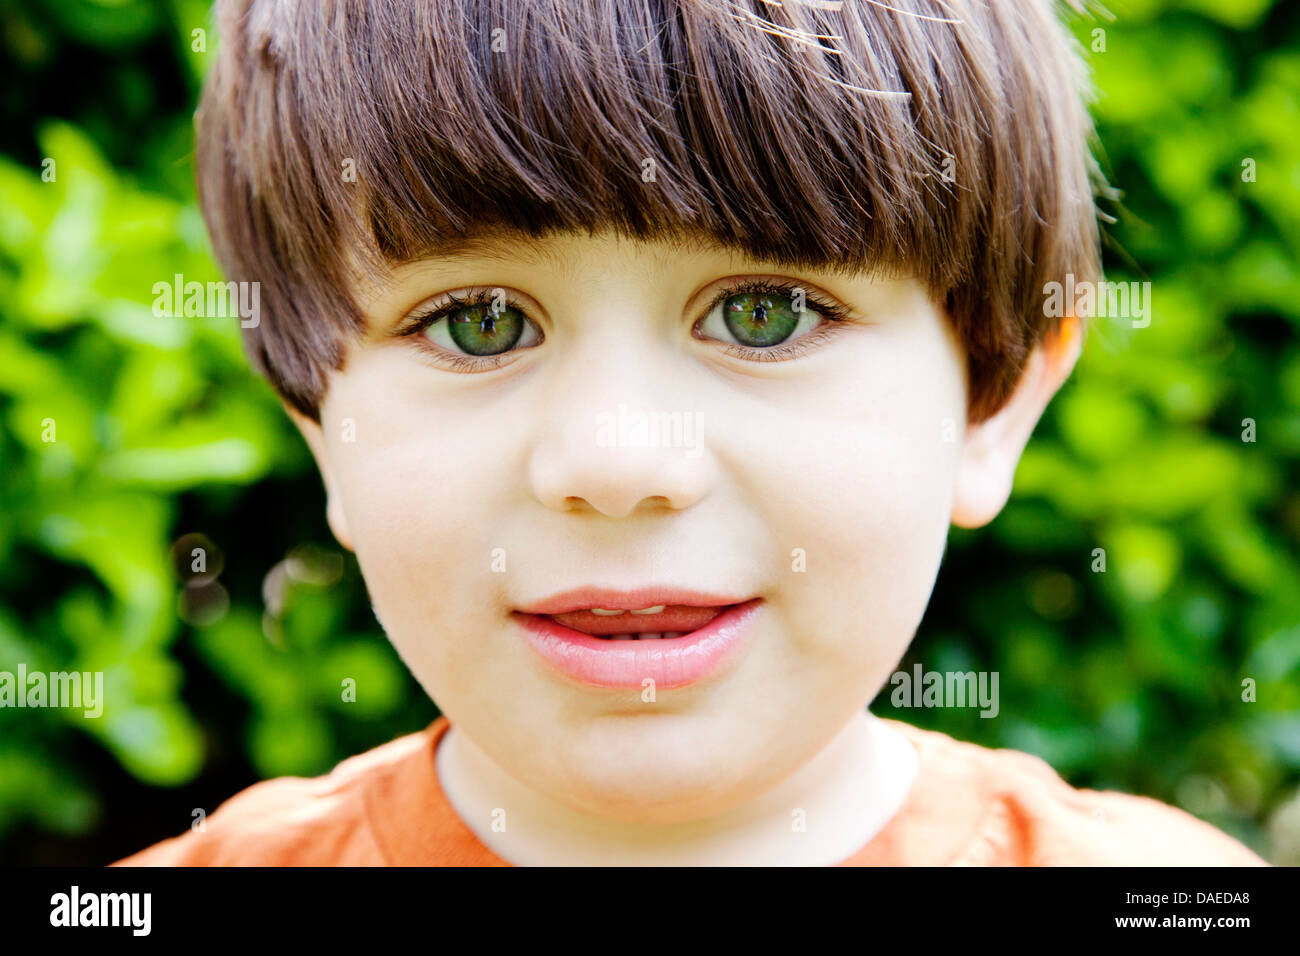 Young Boy With Green Eyes, Portrait Stock Photo: 58095472